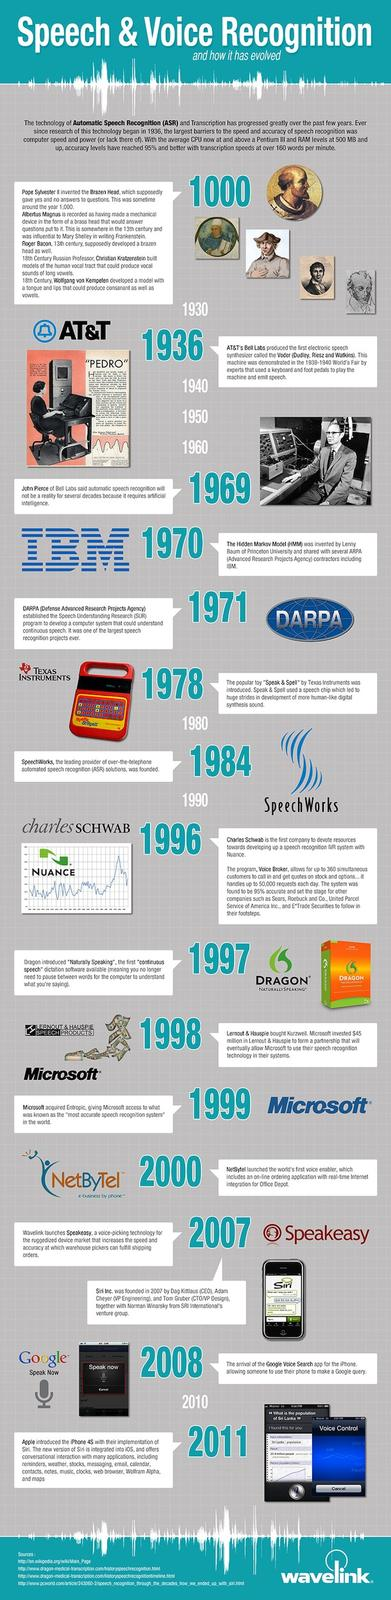 The 1,000-Year Evolution of Speech and Voice Recognition